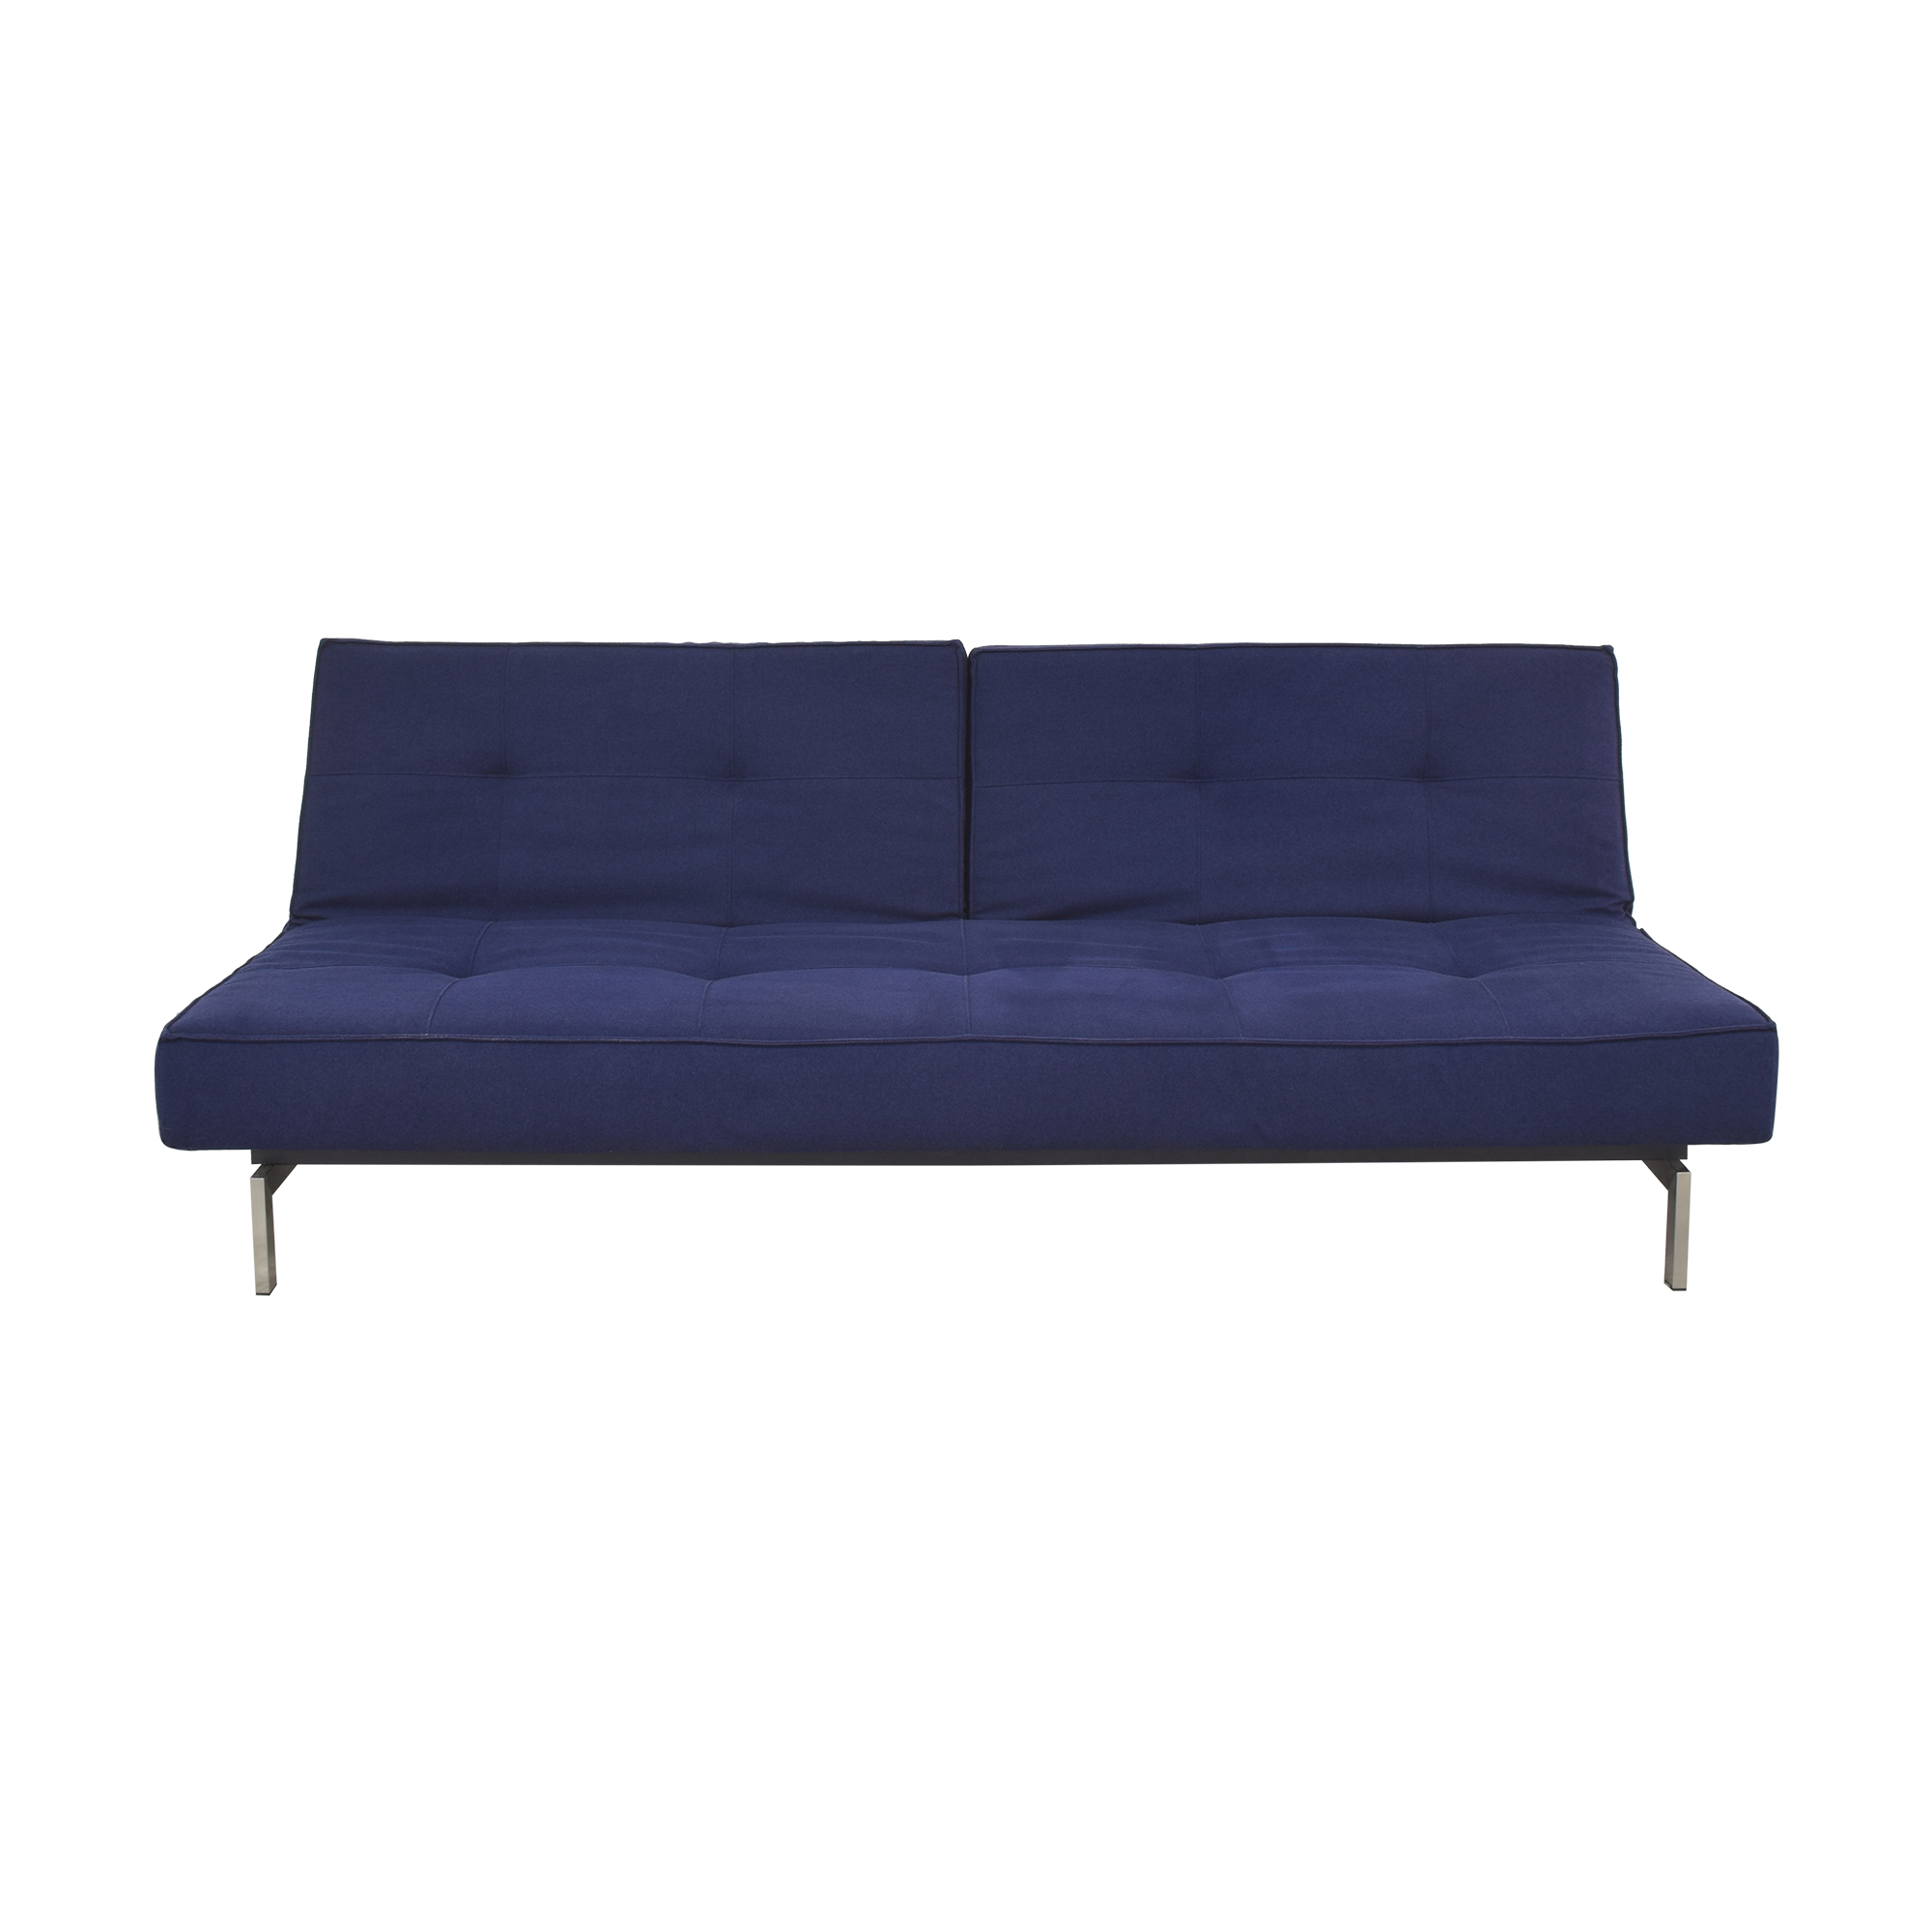 ABC Carpet & Home Crashpad Sofa sale